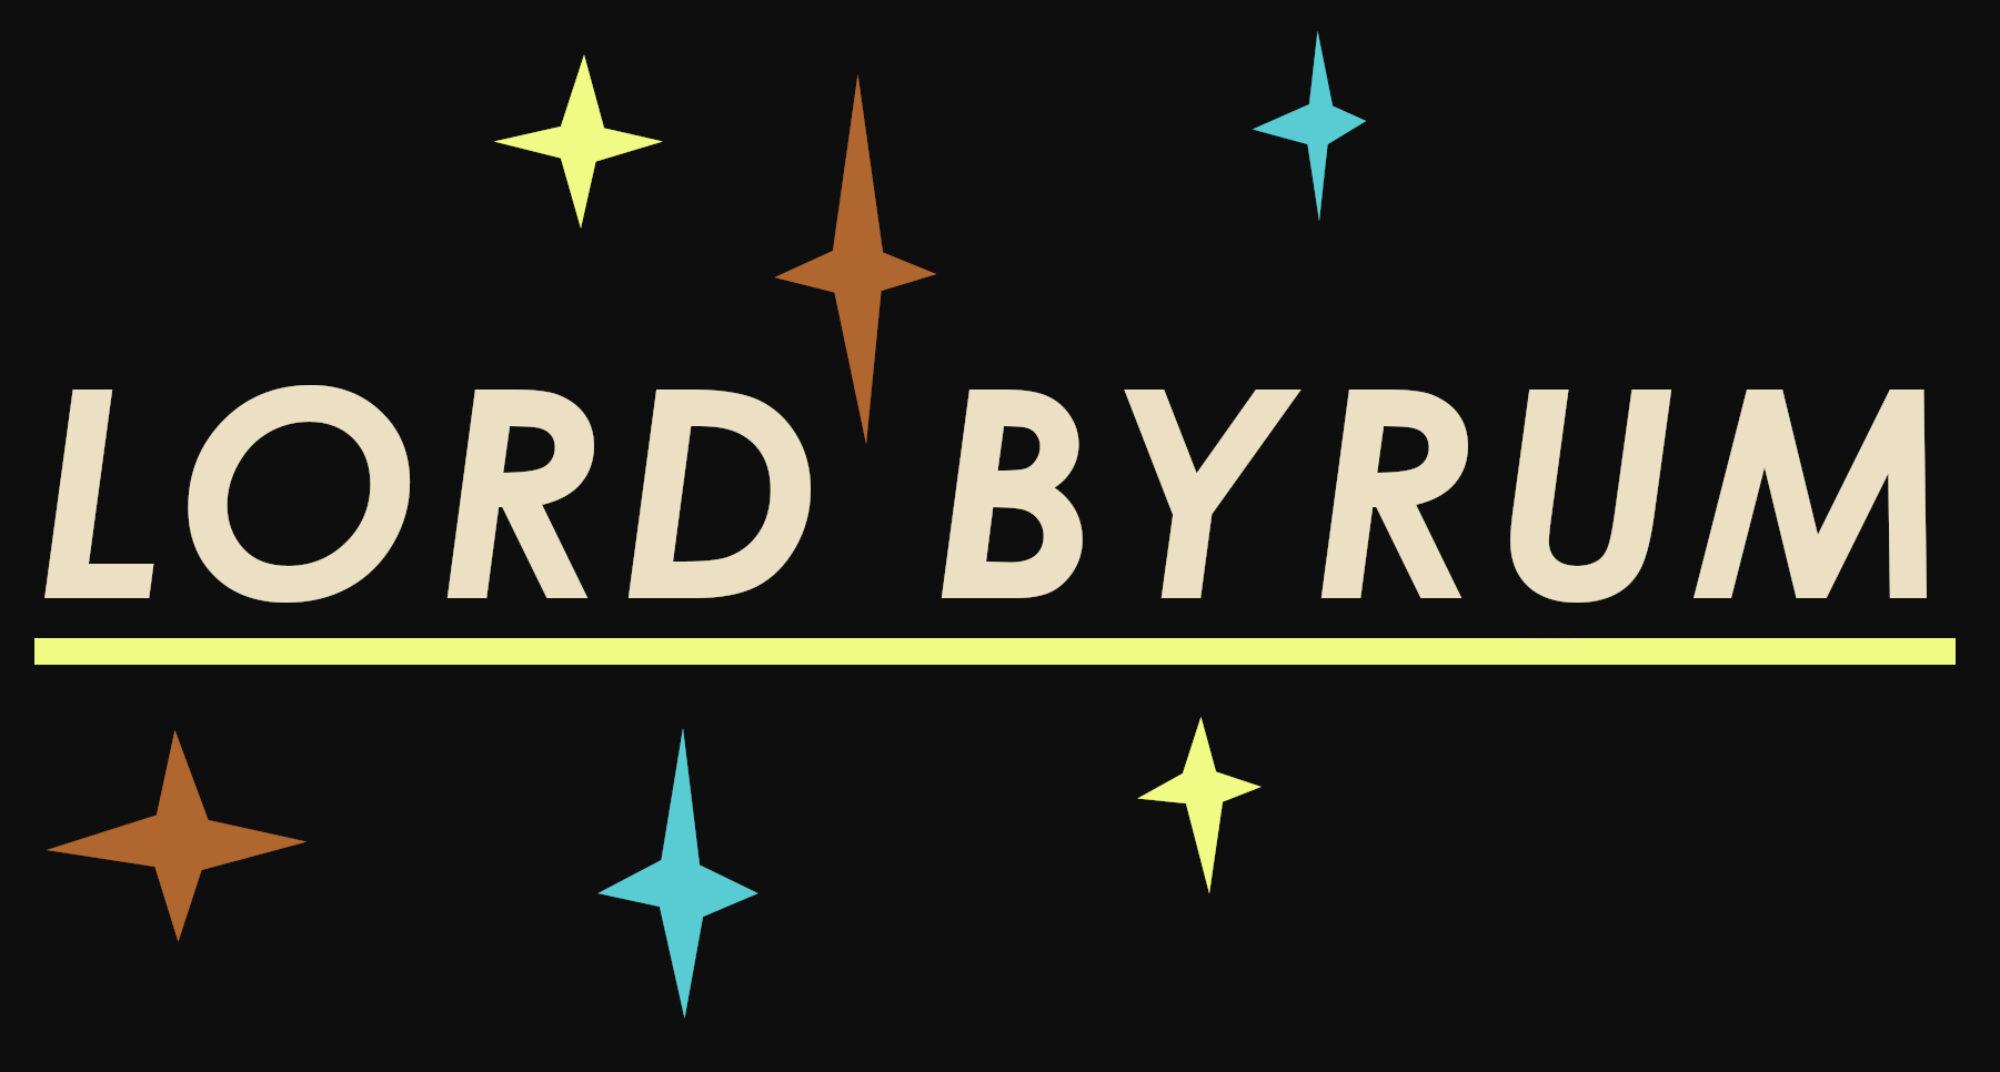 LORD BYRUM